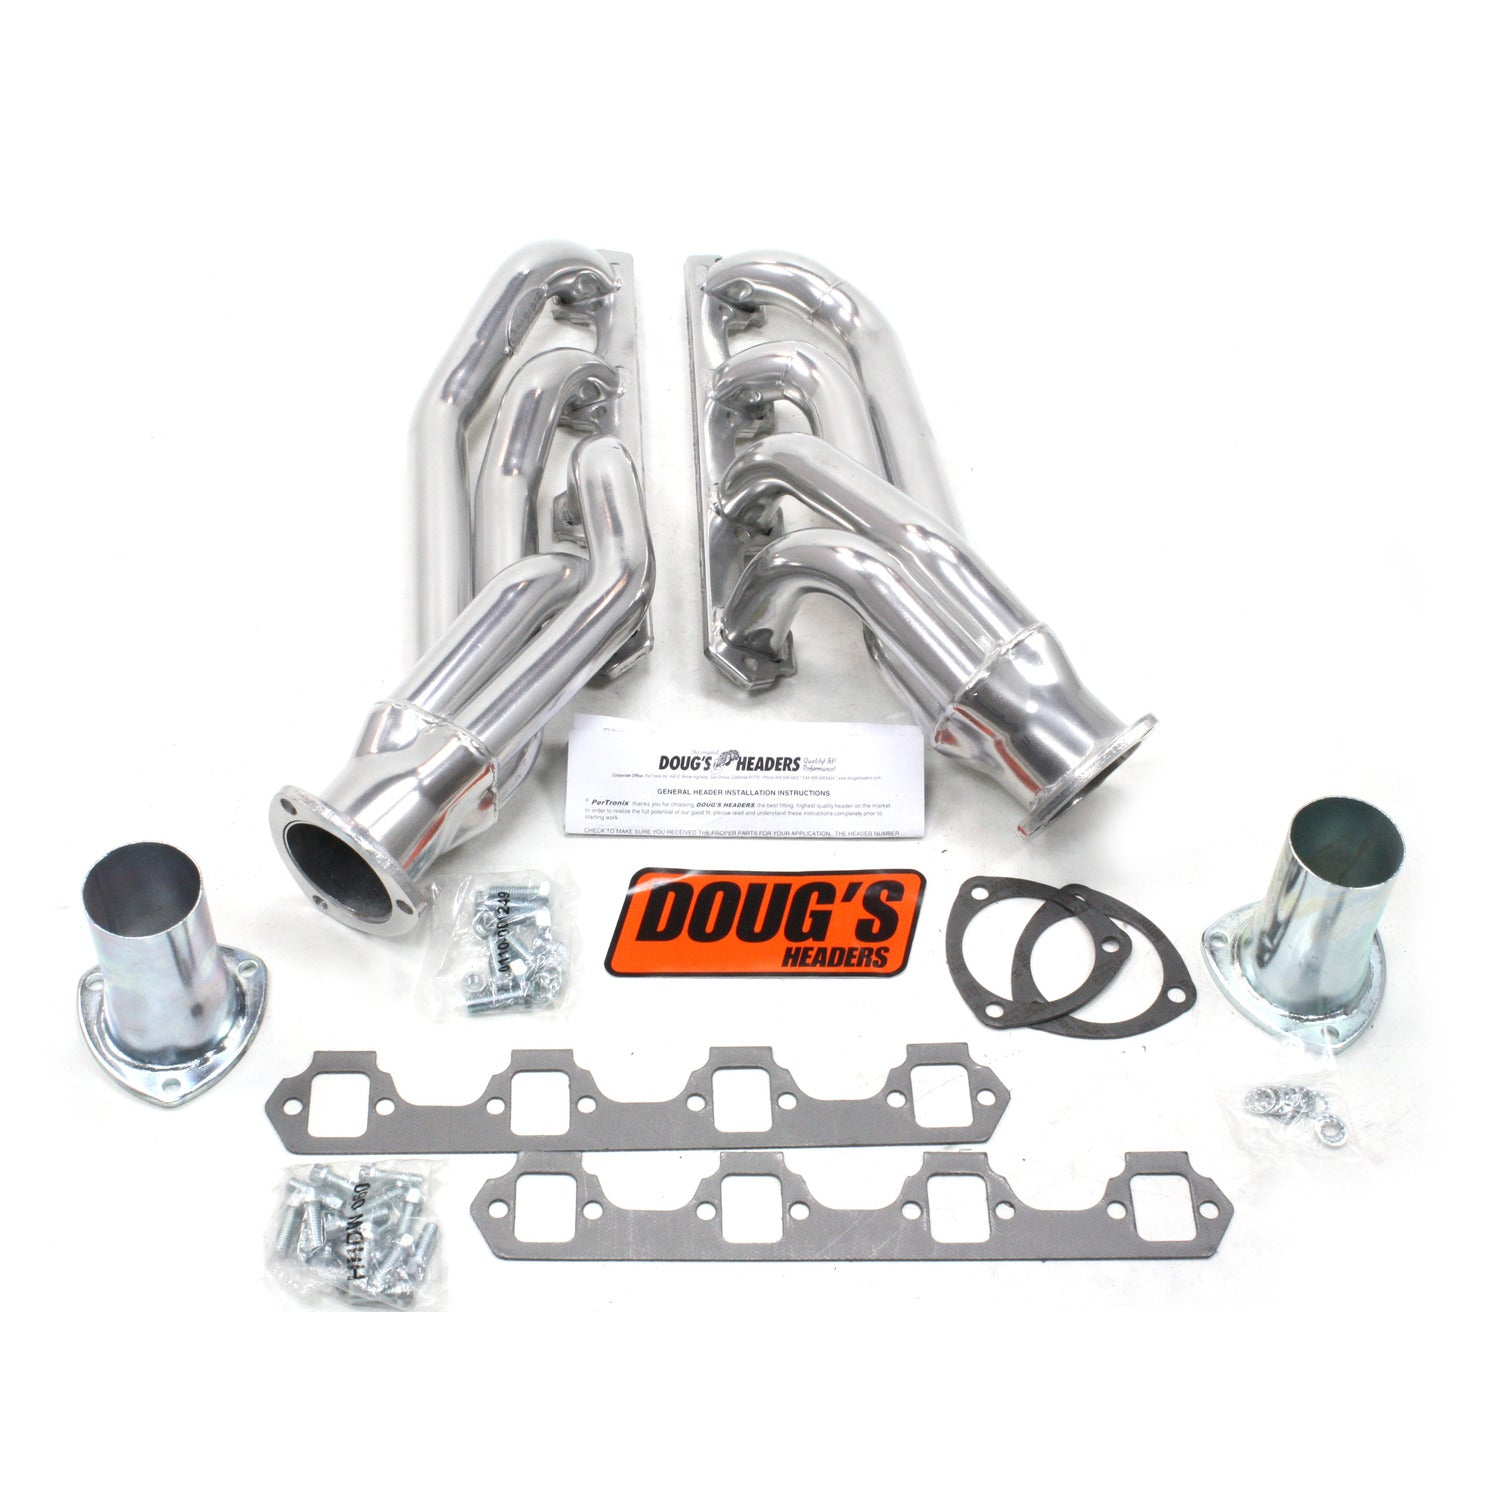 "Doug's Headers D665 1 5/8"" 4-Tube Shorty Header Ford Mustang Small Block Ford 64-73 Metallic Ceramic Coating"